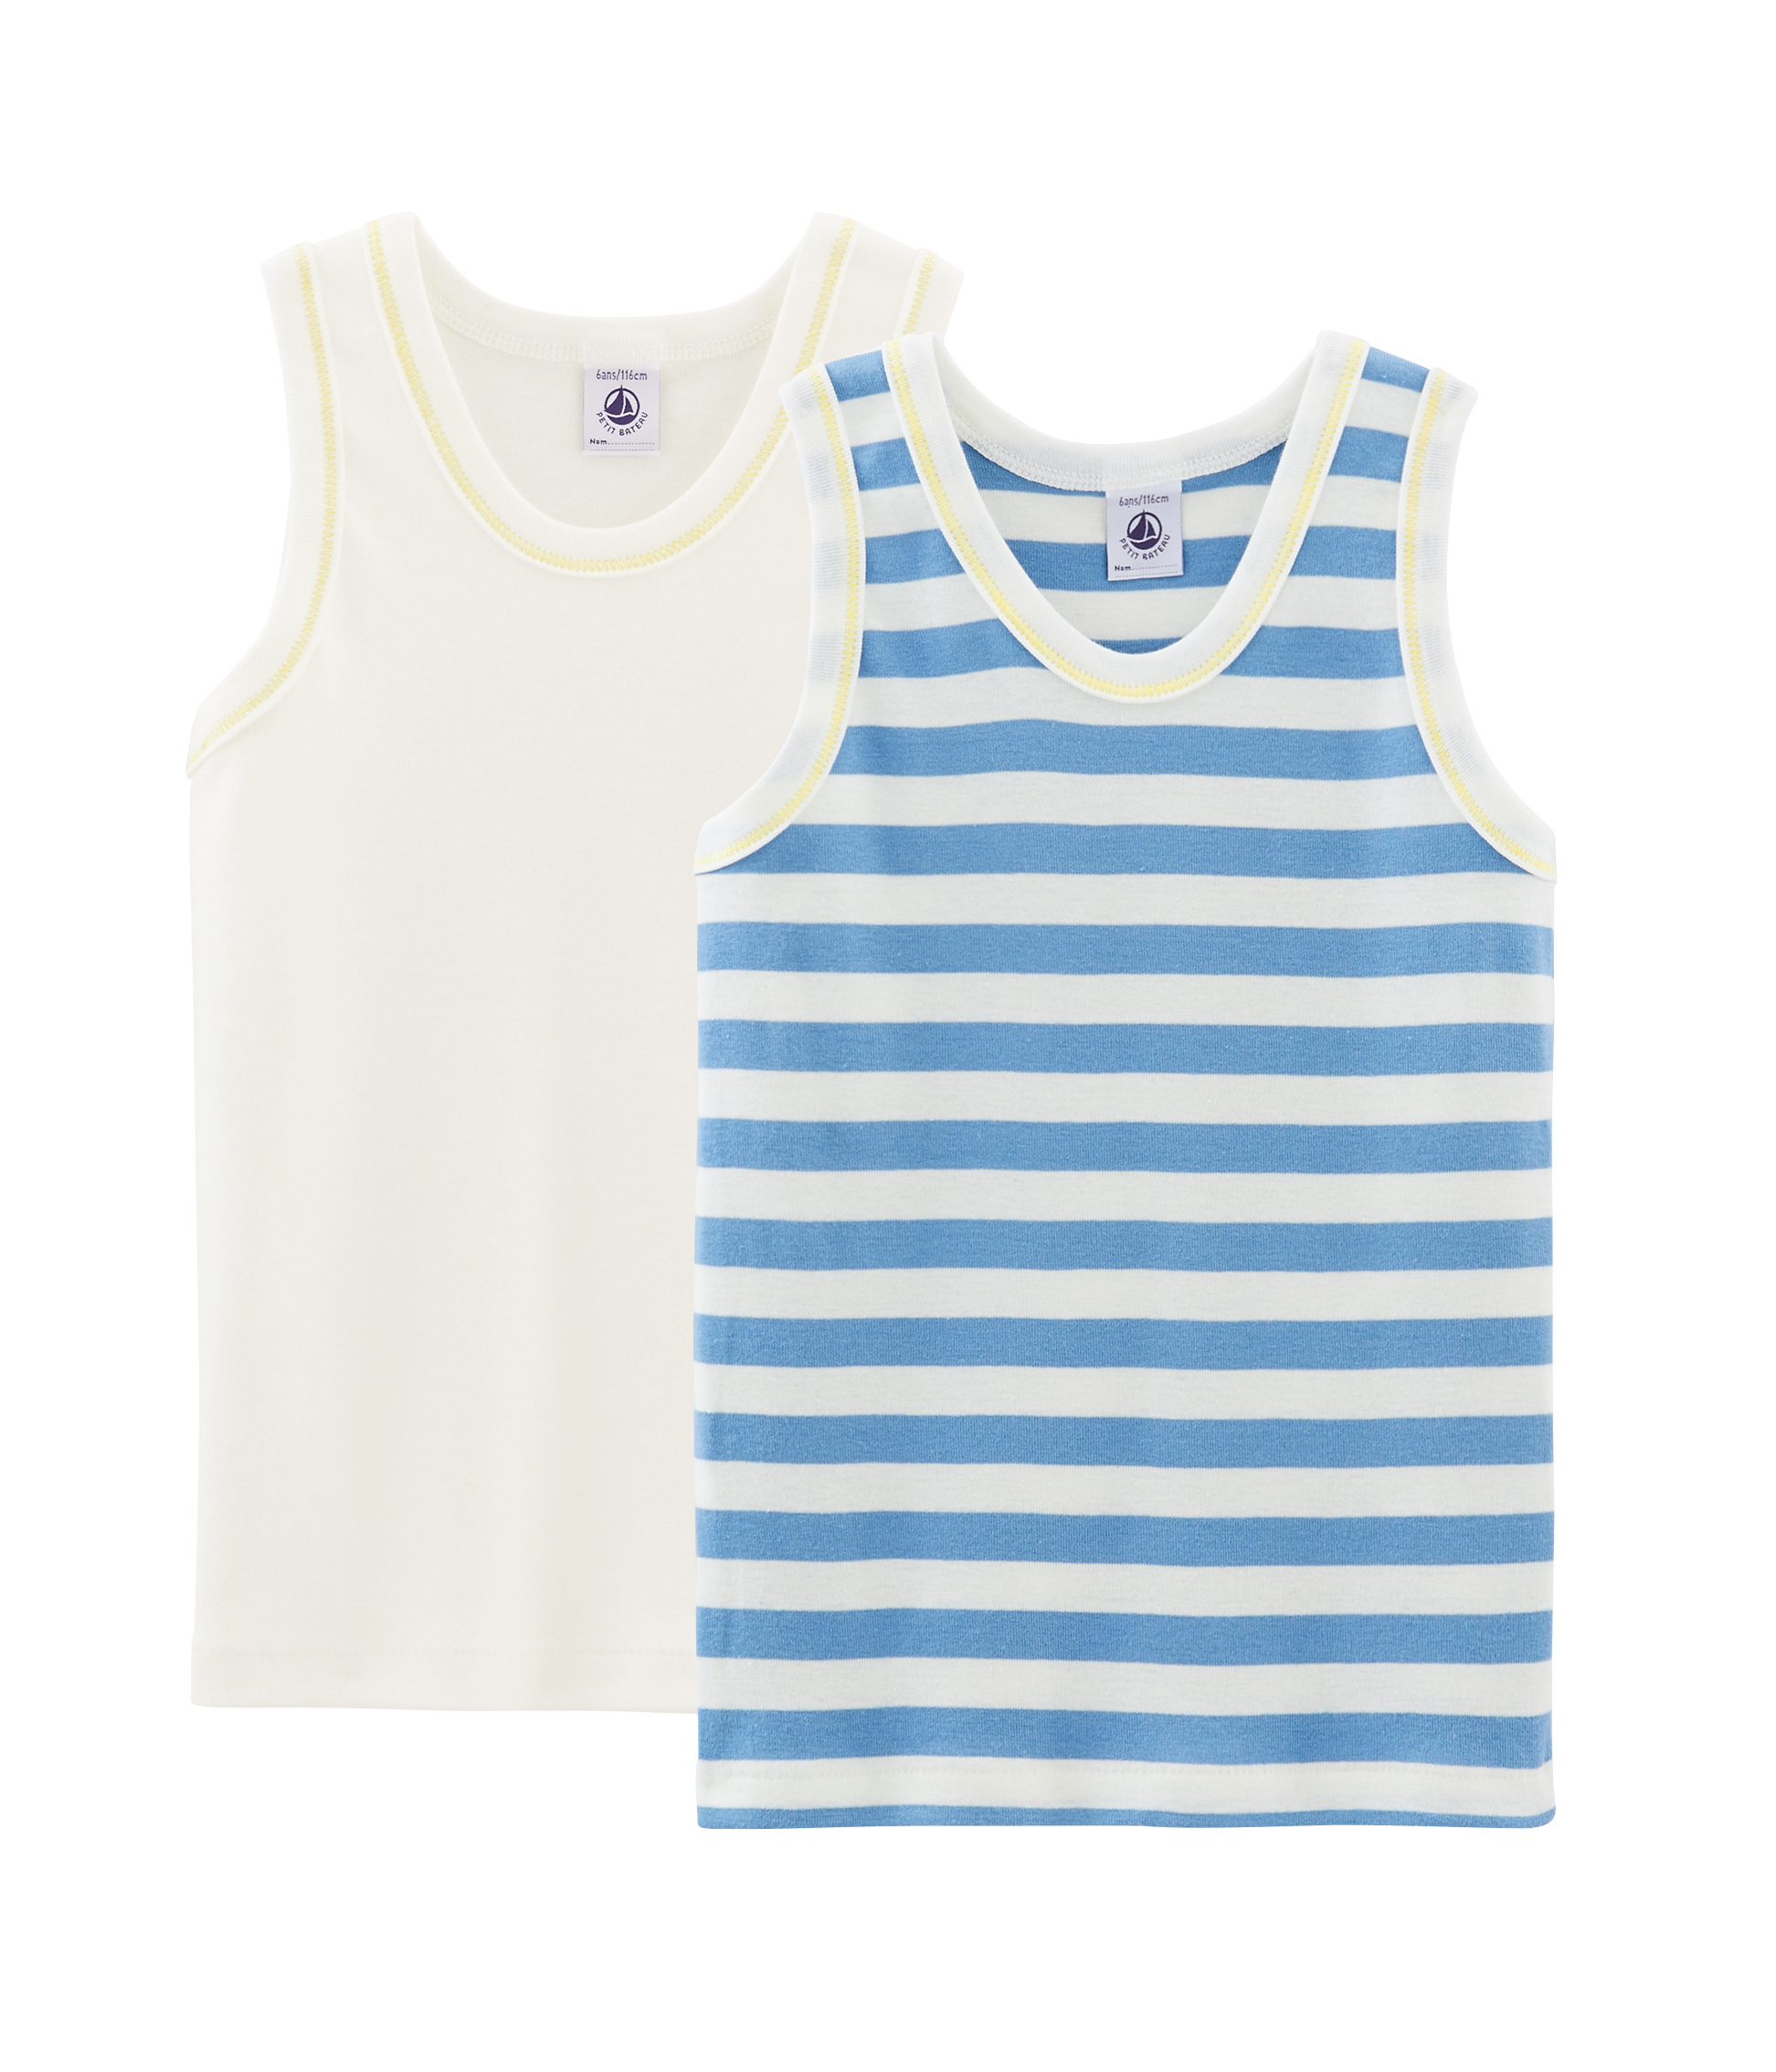 Petit Bateau Boys 5447300 Vest 12 Years Variante 1 Zga Multicolour